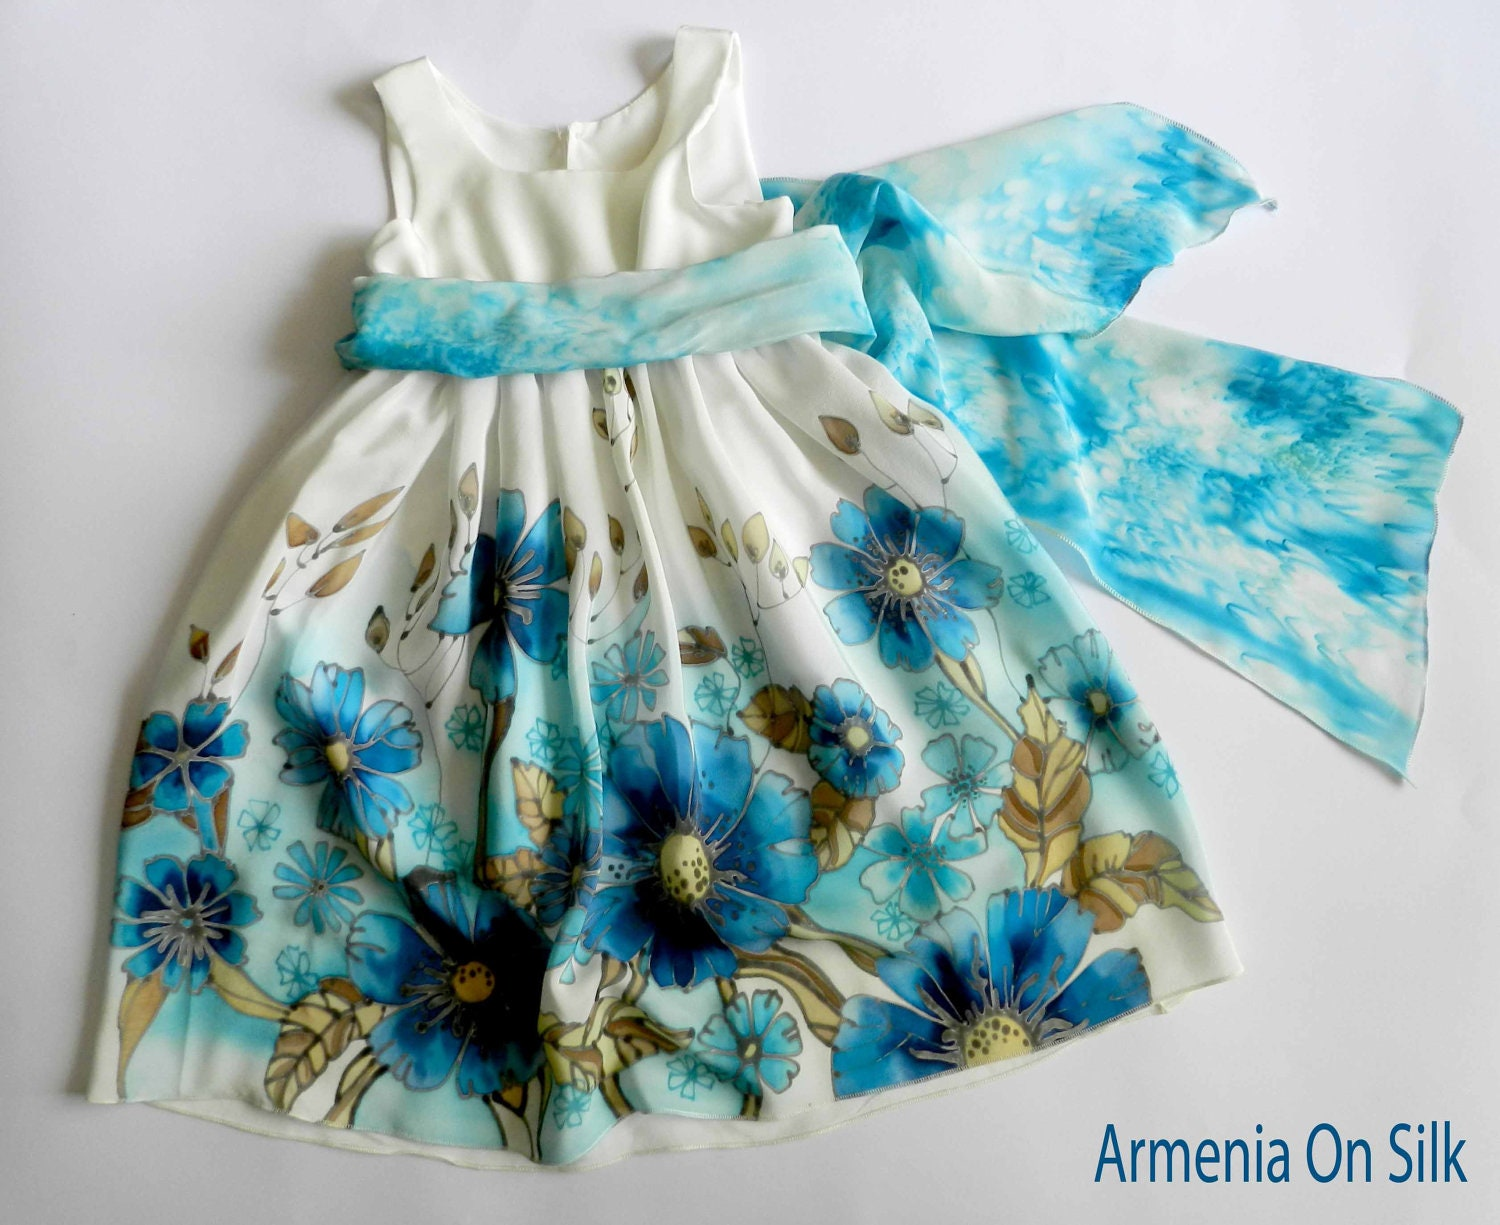 Flower silk dress hand painted for kids.Navy blue,  turquoise and  white  silk dress.Anniversary dress. Made to order. - ArmeniaOnSilk